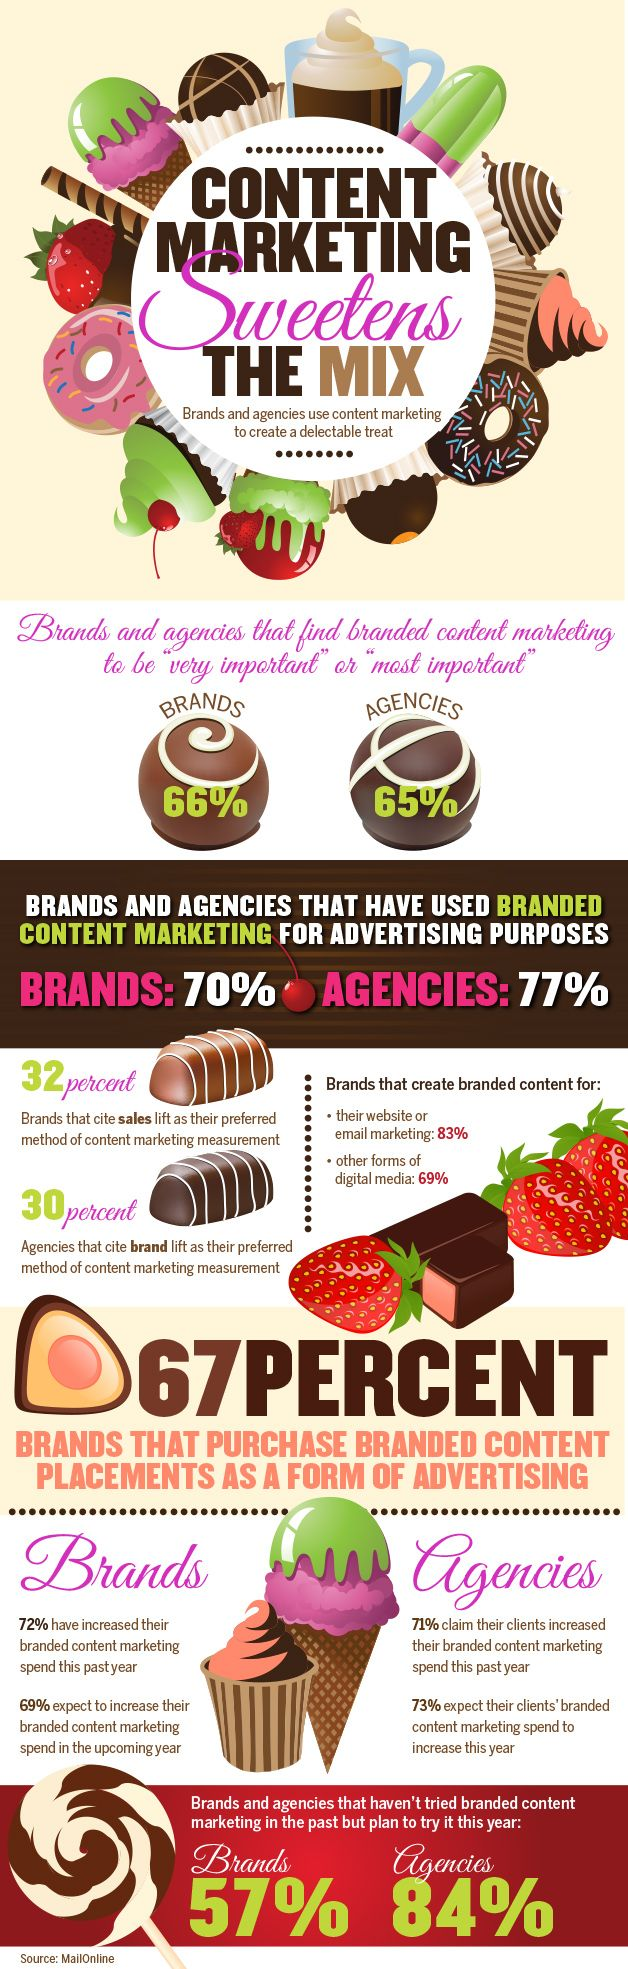 #Infographic: Content Marketing Sweetens the Mix—Brands and agencies use content #marketing to create a delectable treat. (research by @Daily Mail)